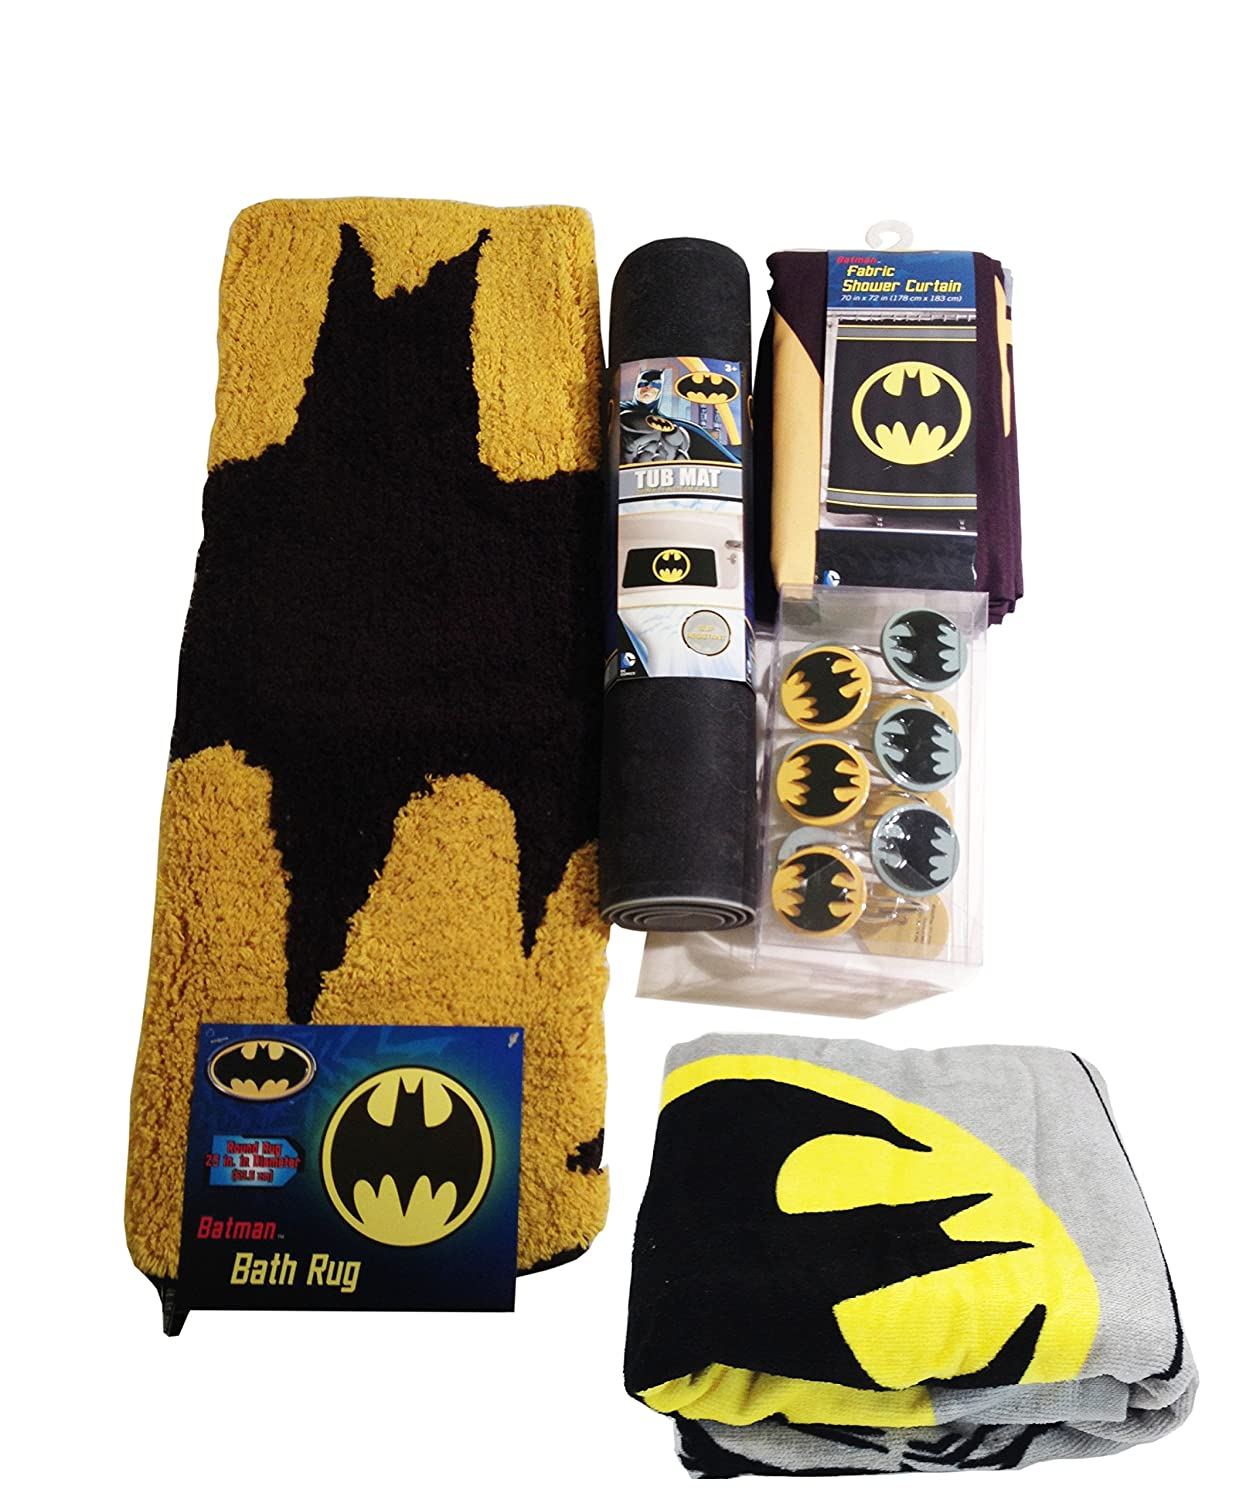 Batman Bathroom Set, Shower Curtain, Hooks, Bath Rug, Bath Towel, and Bath Tub Mat 5844430